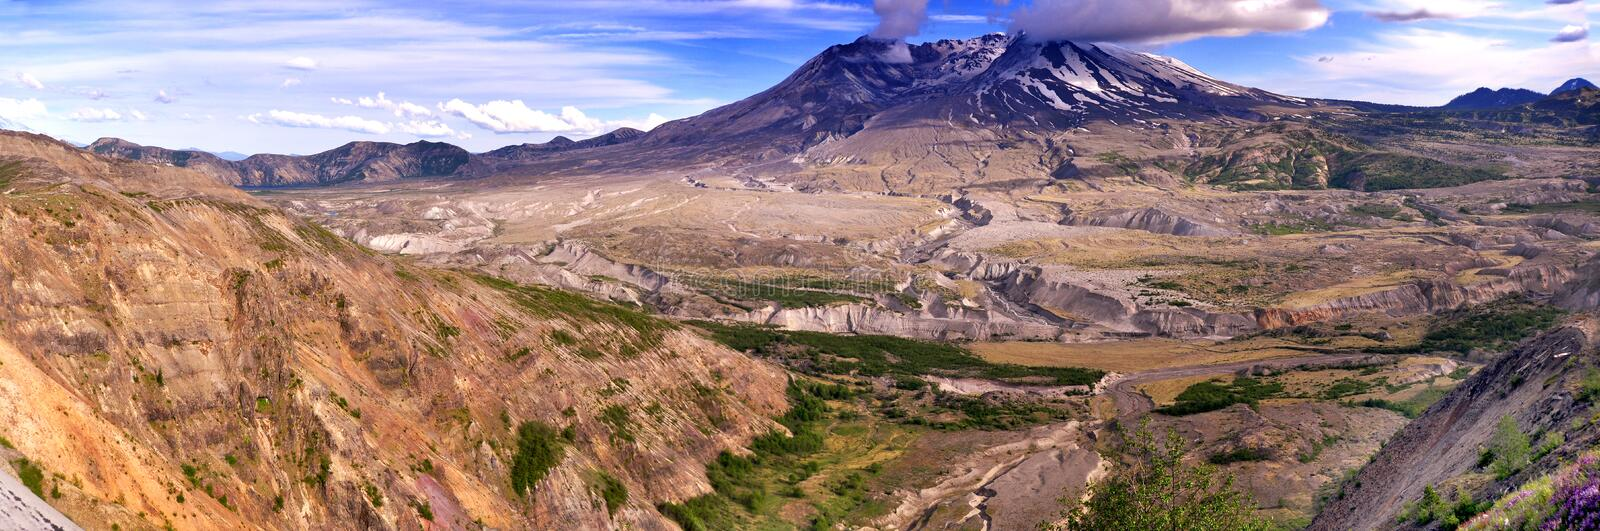 Mount St Helens_active stratovolcano stock images